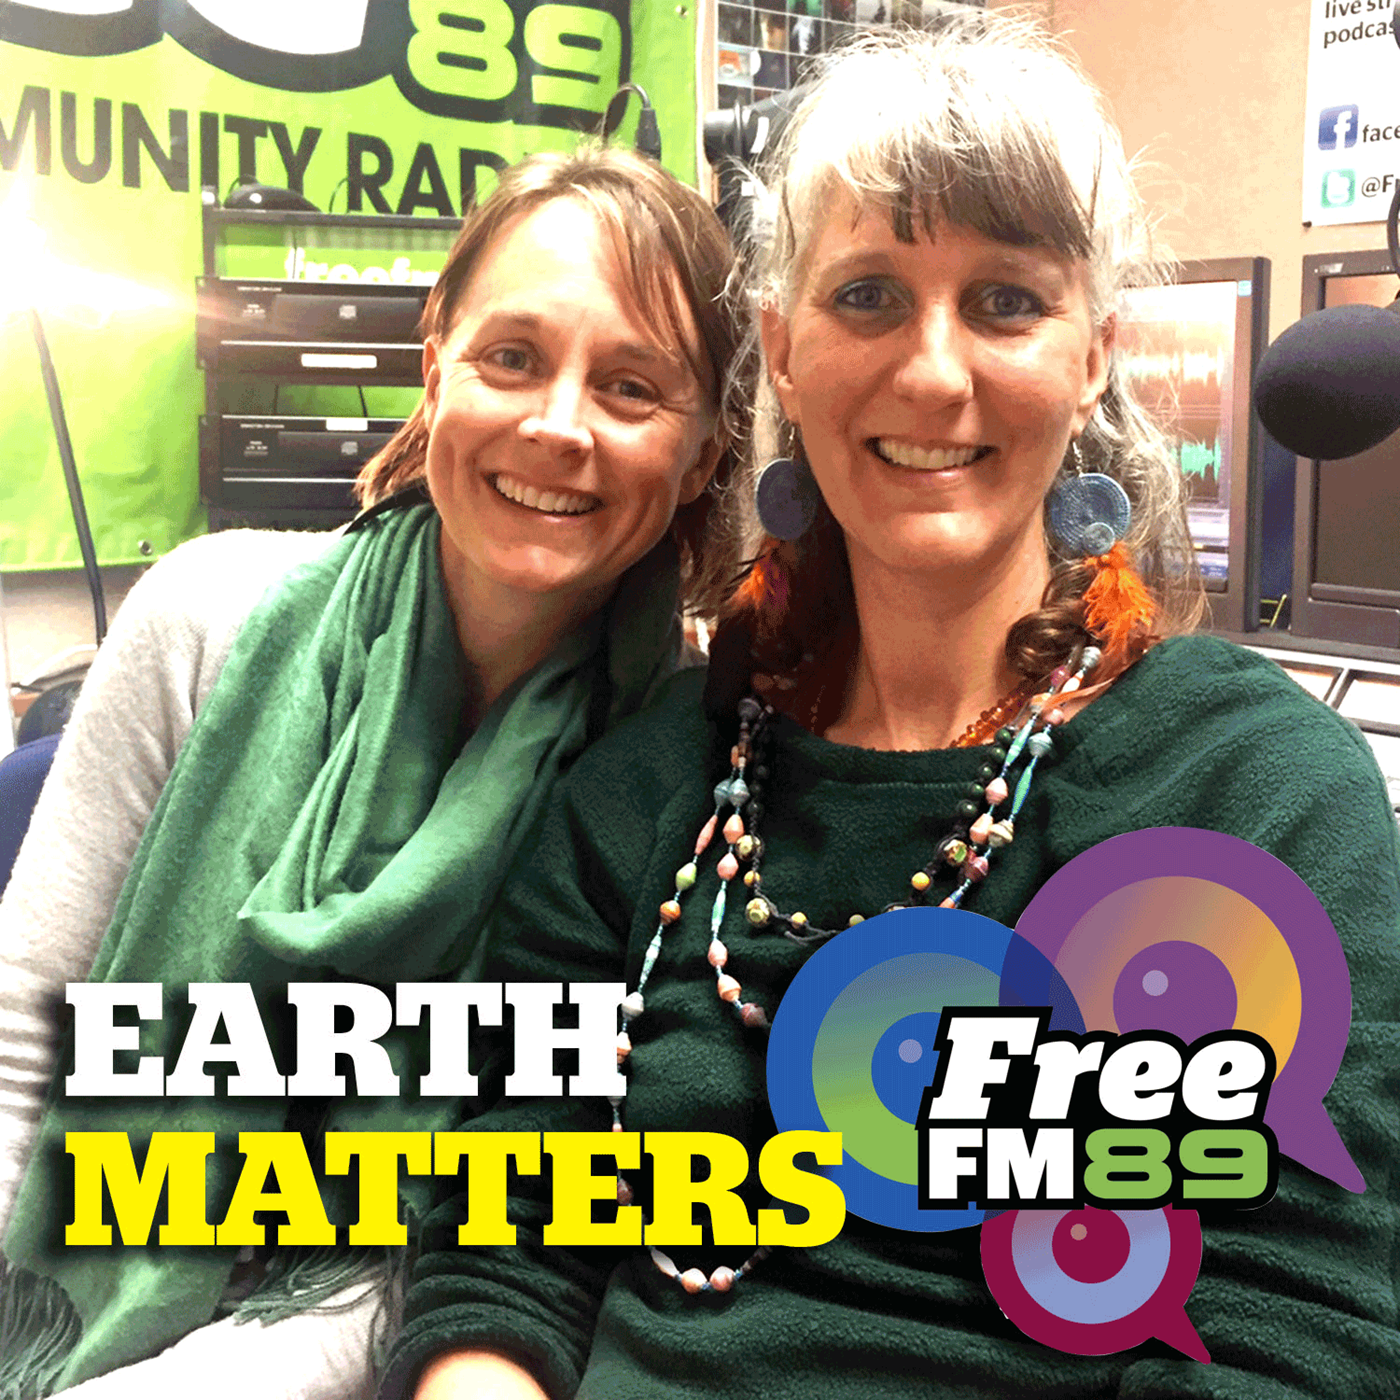 https://cdn.accessradio.org/StationFolder/freefm89/Images/EarthMatters.png